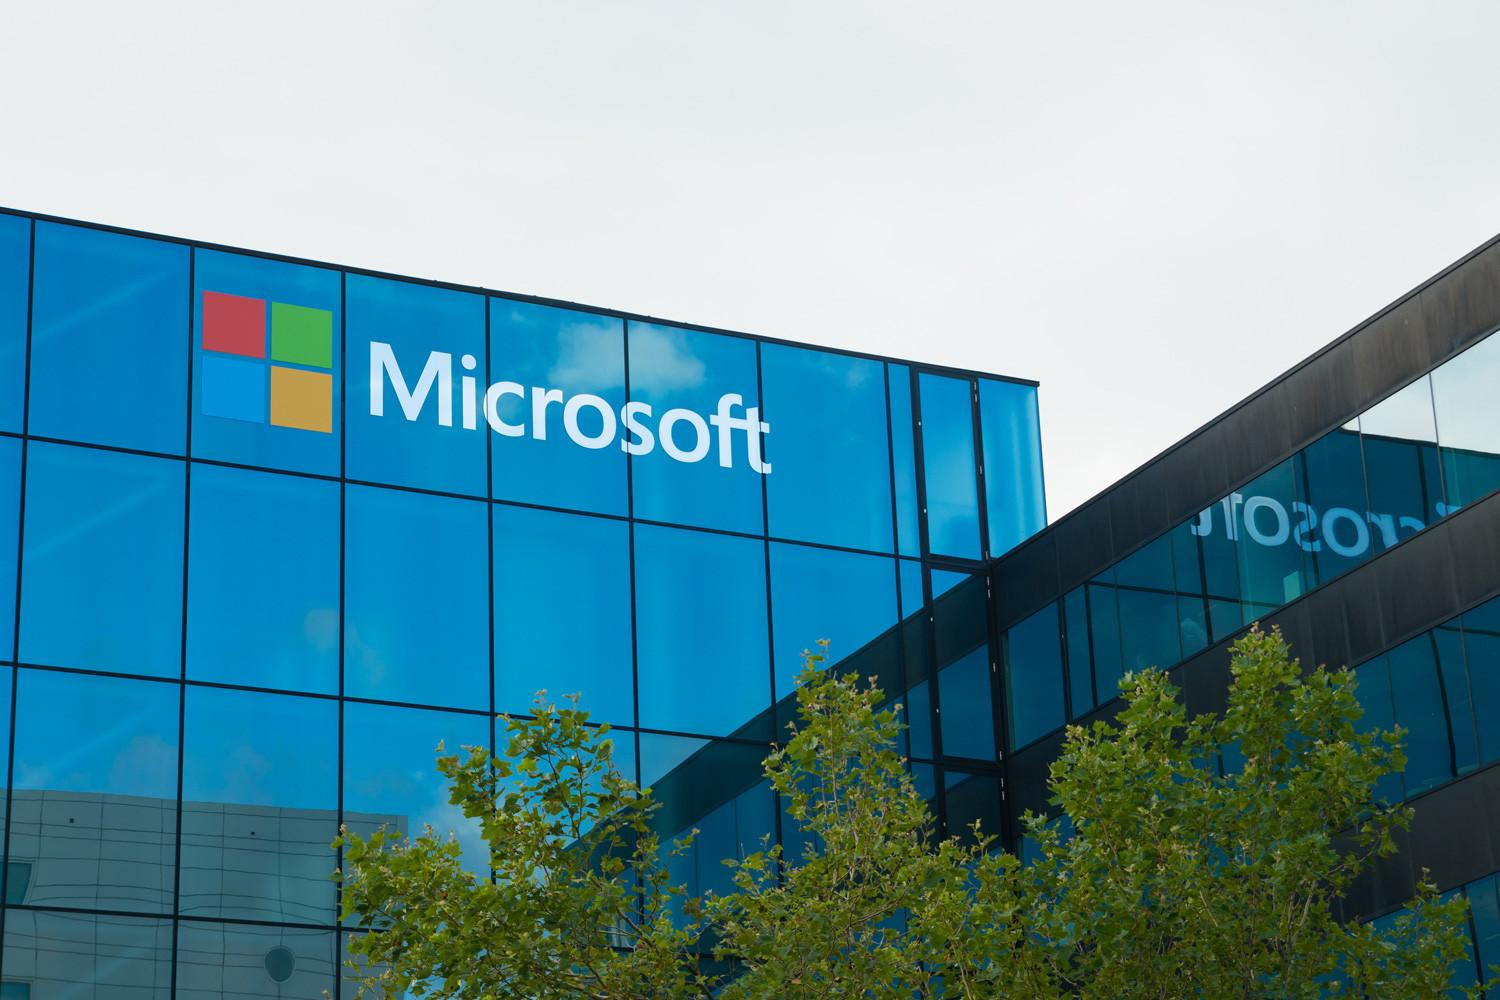 Microsoft issues a reminder that those unsolicited callers aren't from Microsoft